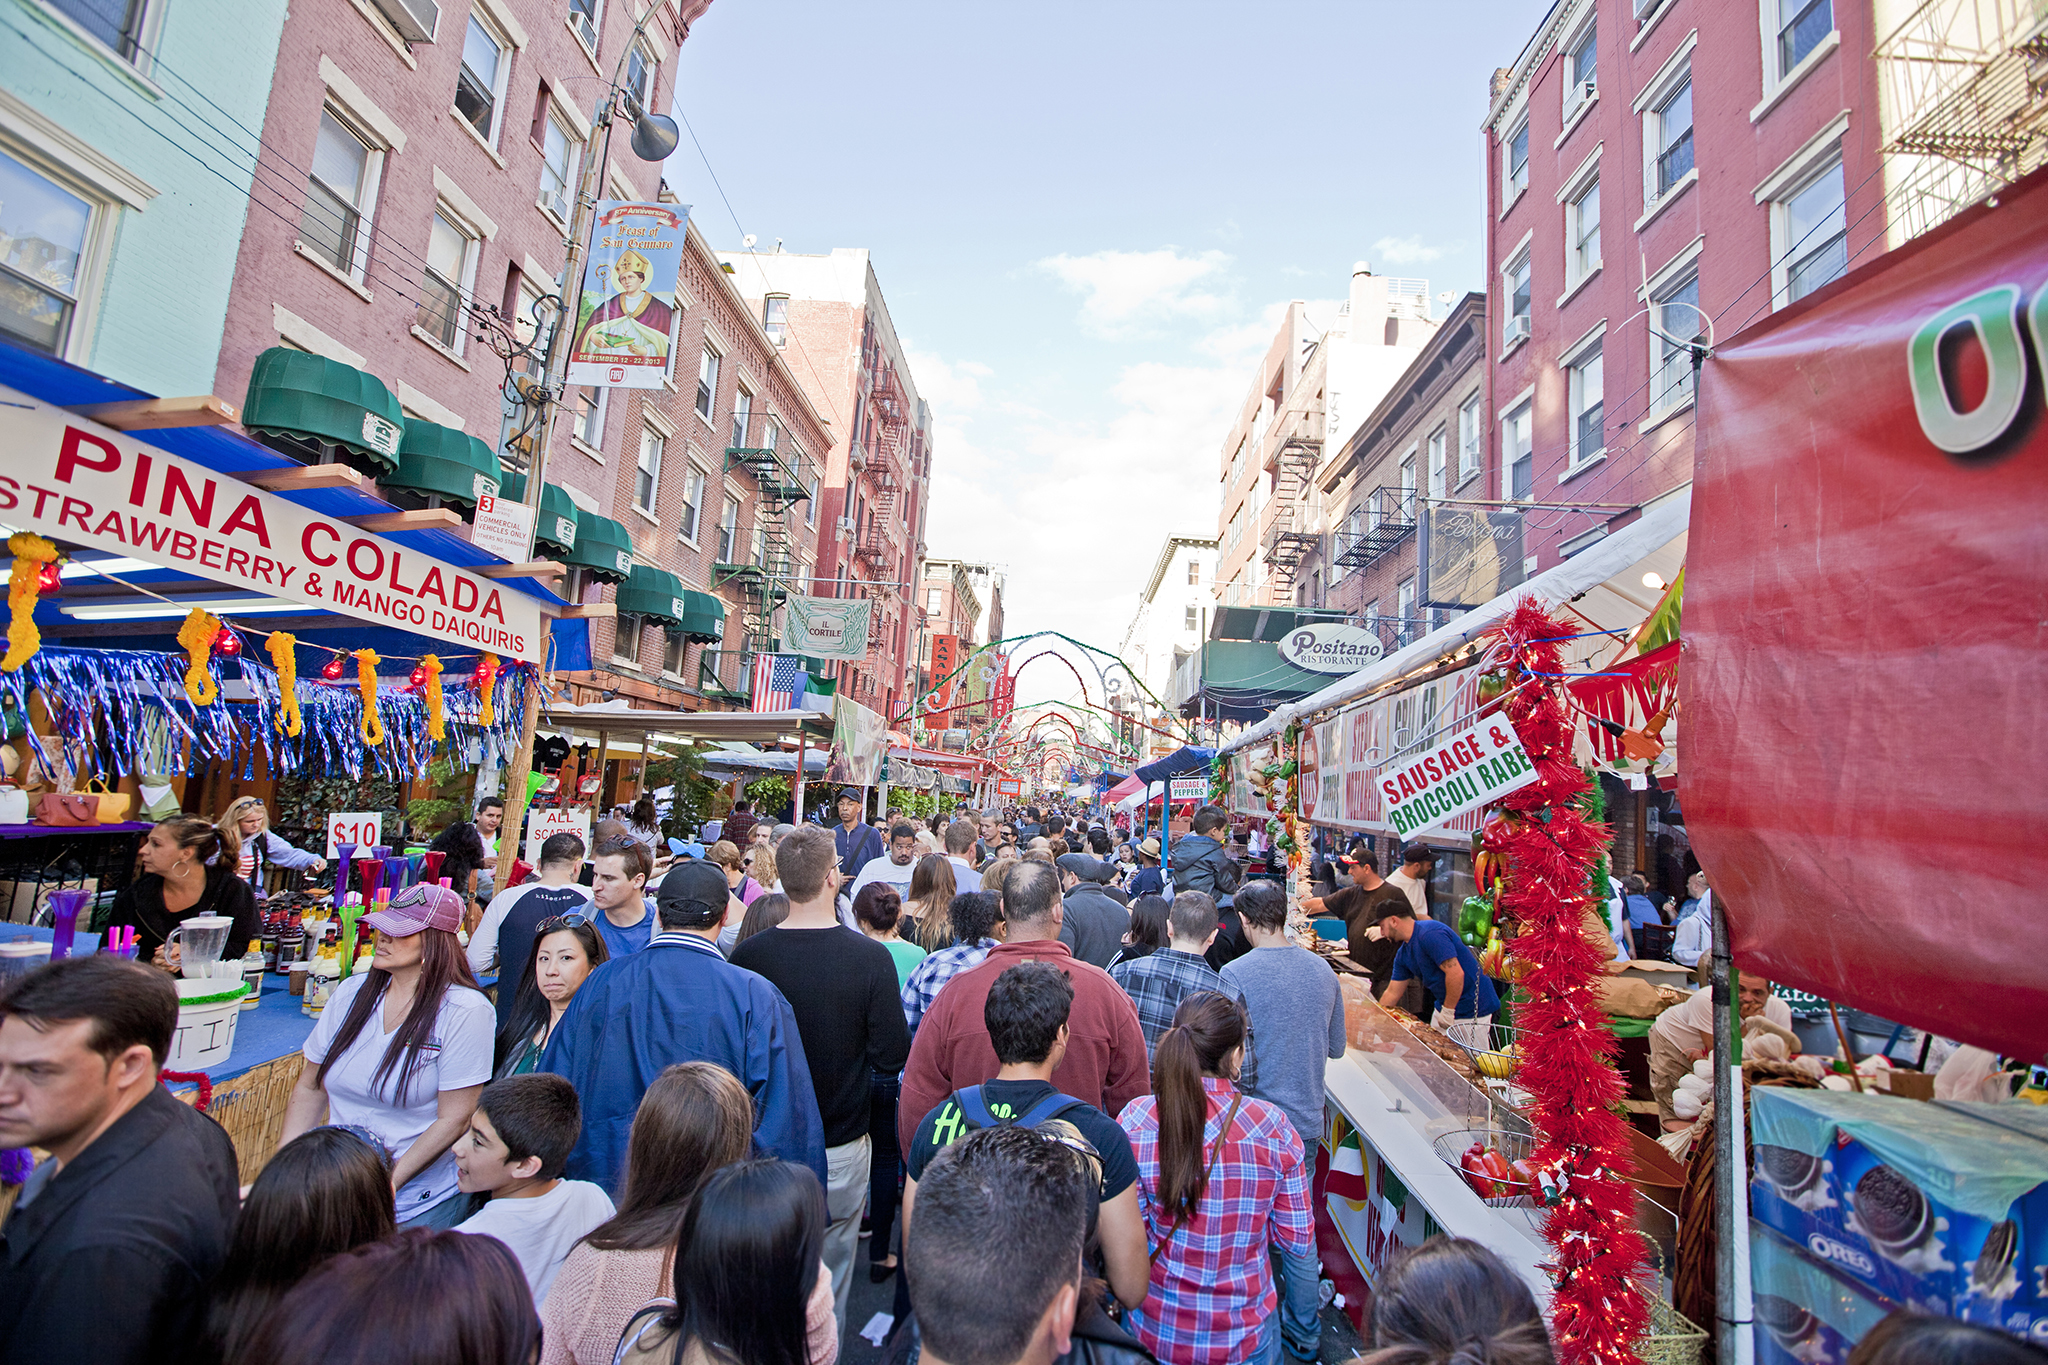 The Feast of San Gennaro